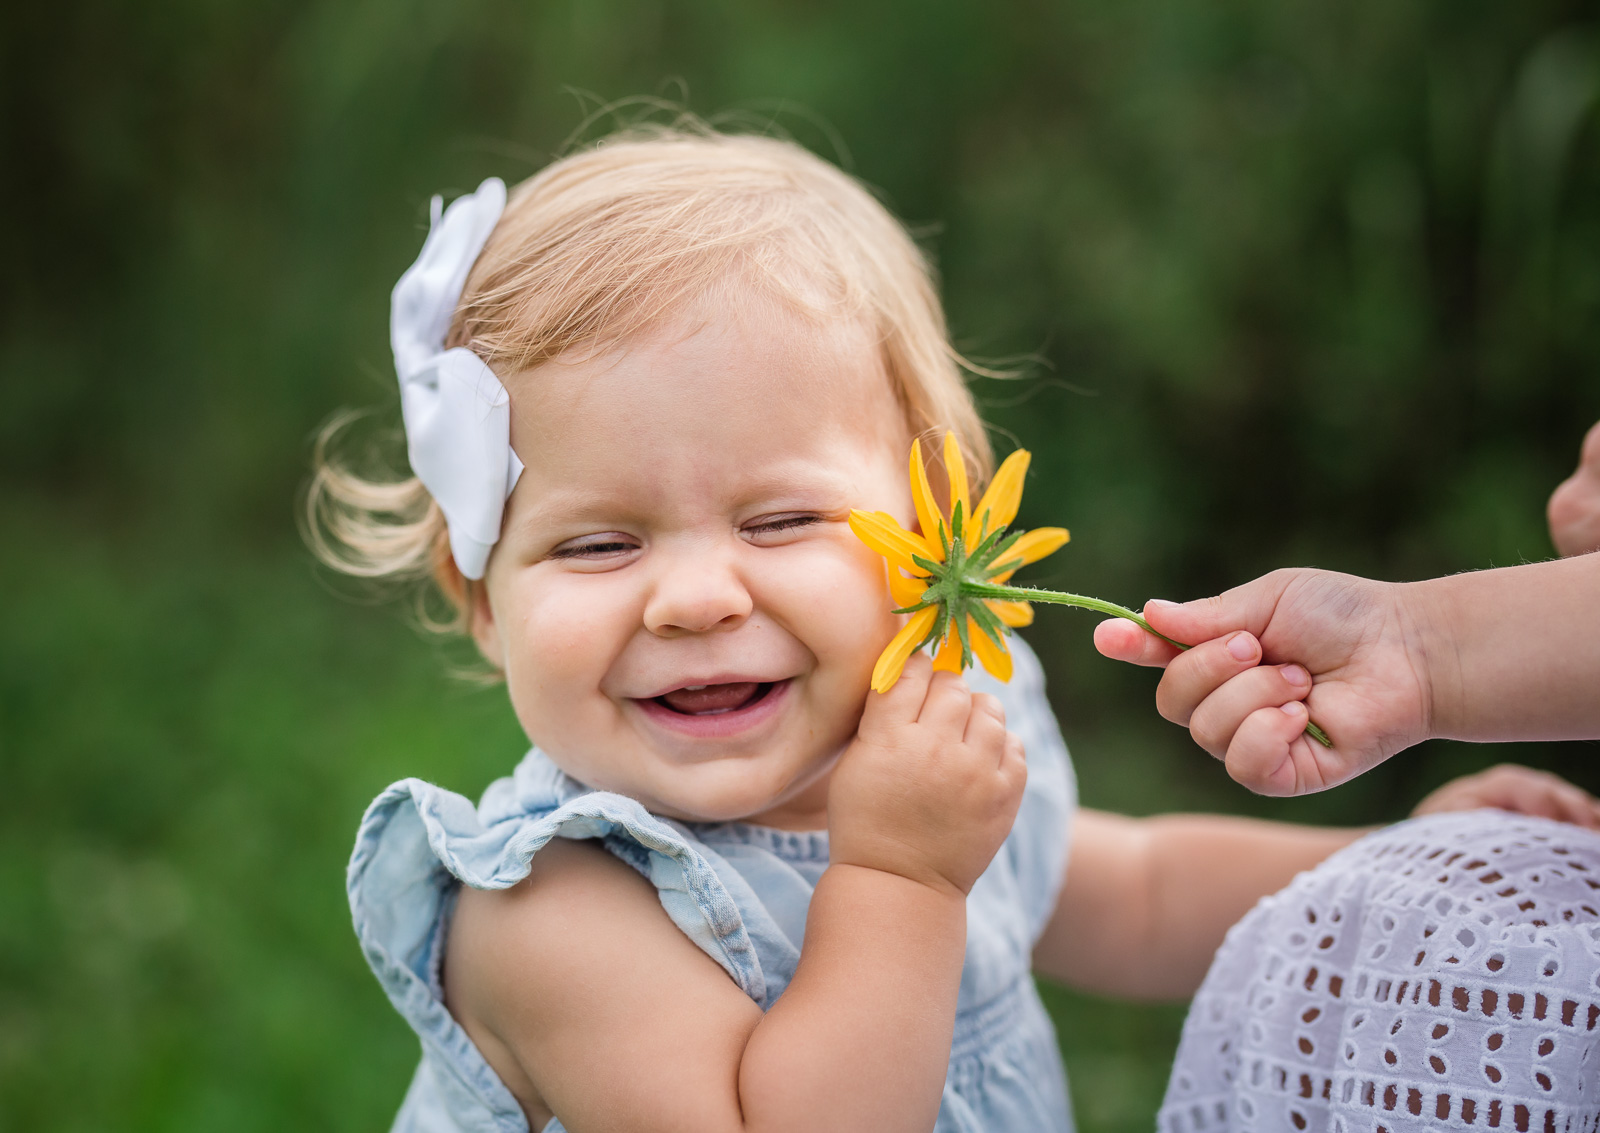 Big sister tickles little sister with flower